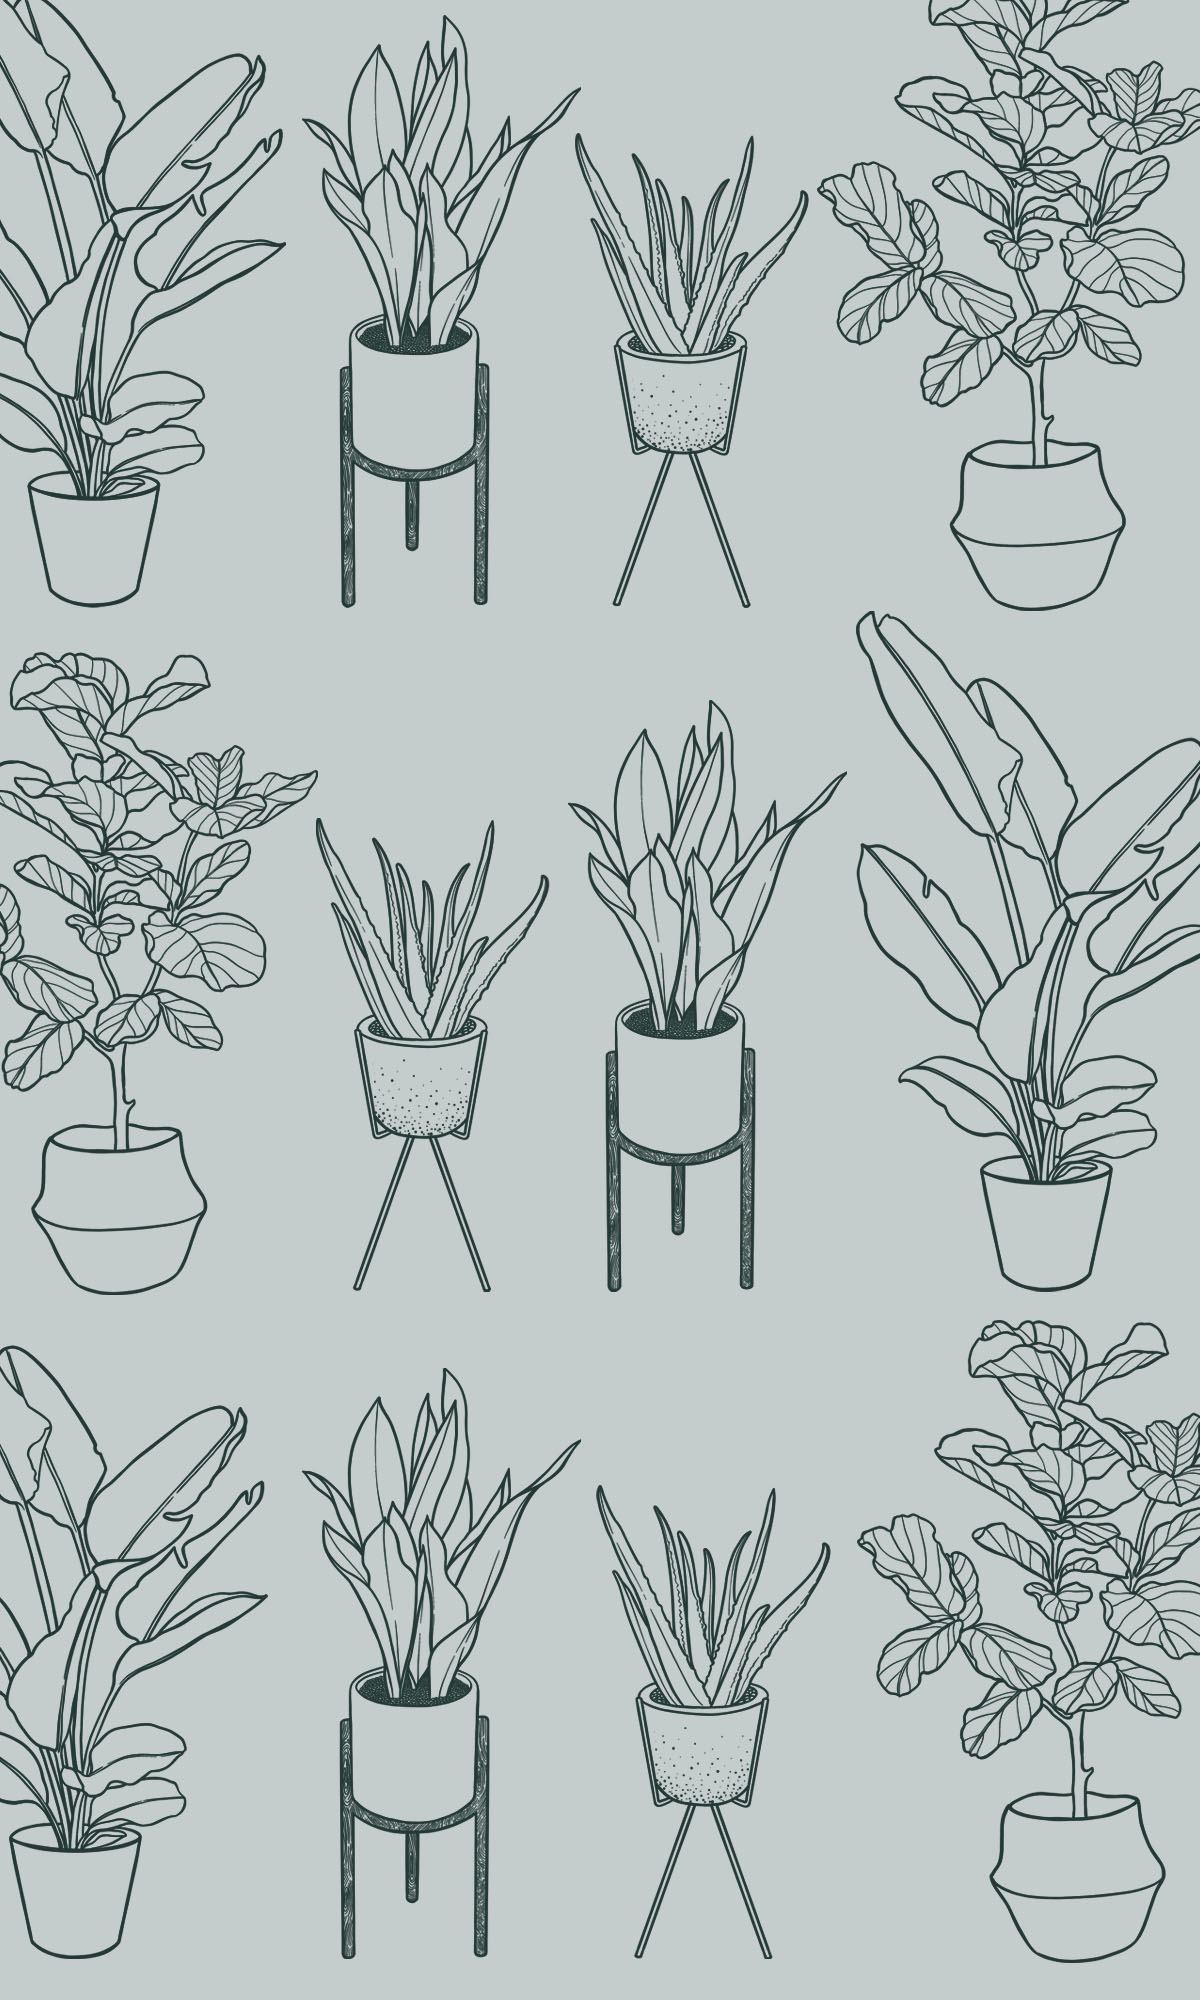 Houseplant-Surface-Pattern_Design.jpg